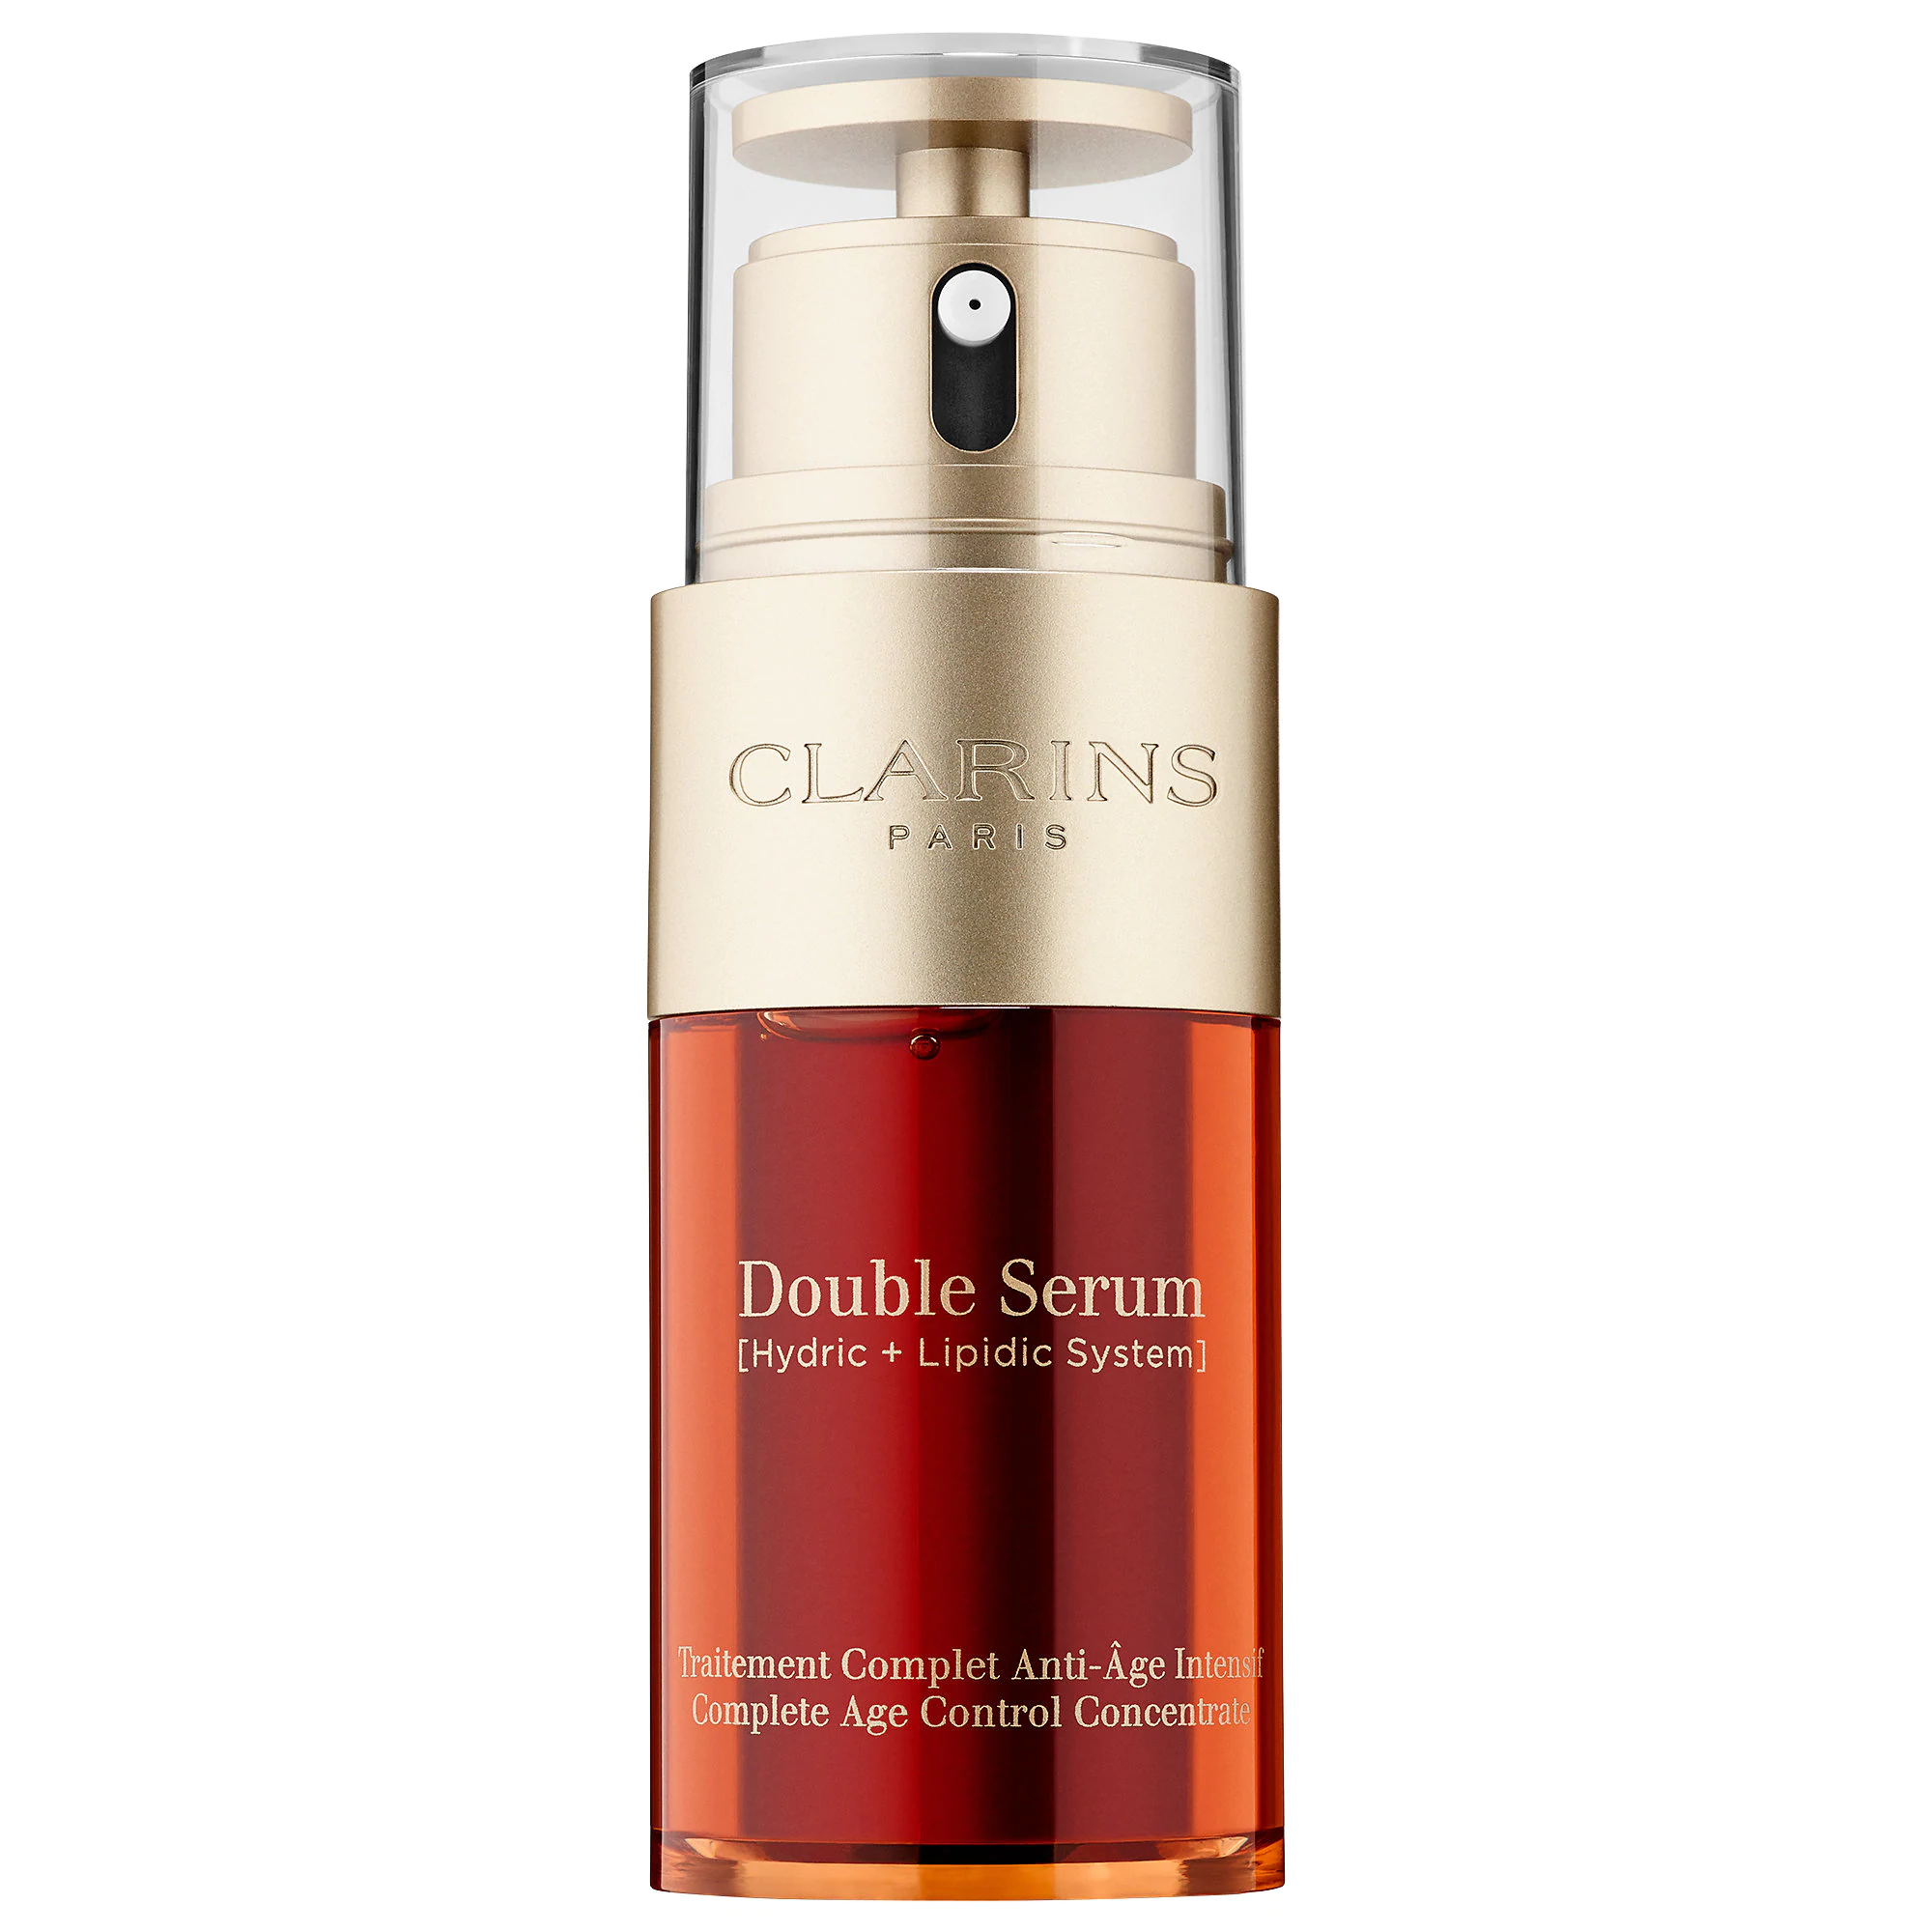 Clarins-Double Serum Complete Age Control Concentrate